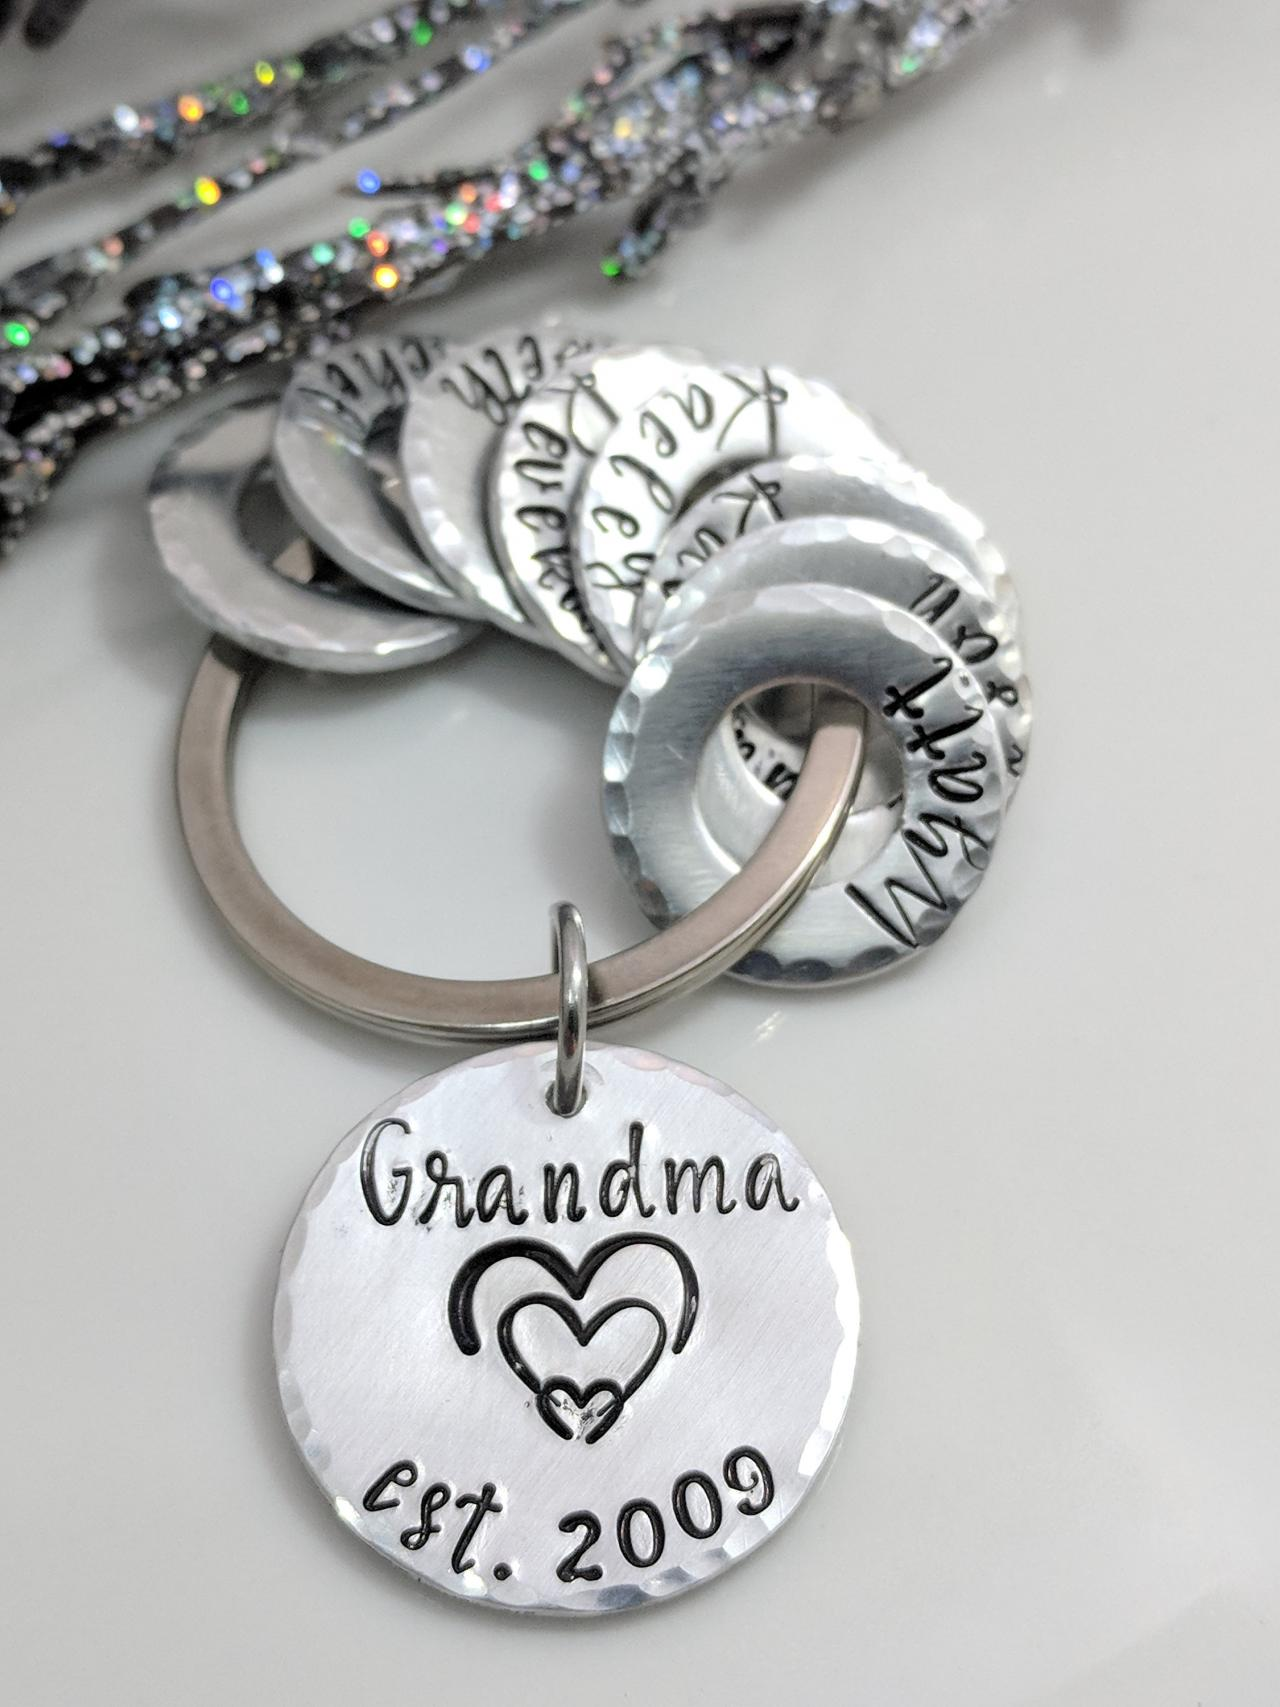 Grandma Gift- Hand Stamped Metal-Personalized Keychain-Names-Grandkids-Mom Gift-Grandpa Gift-Mother's Day-Family Names-Customized Keychain